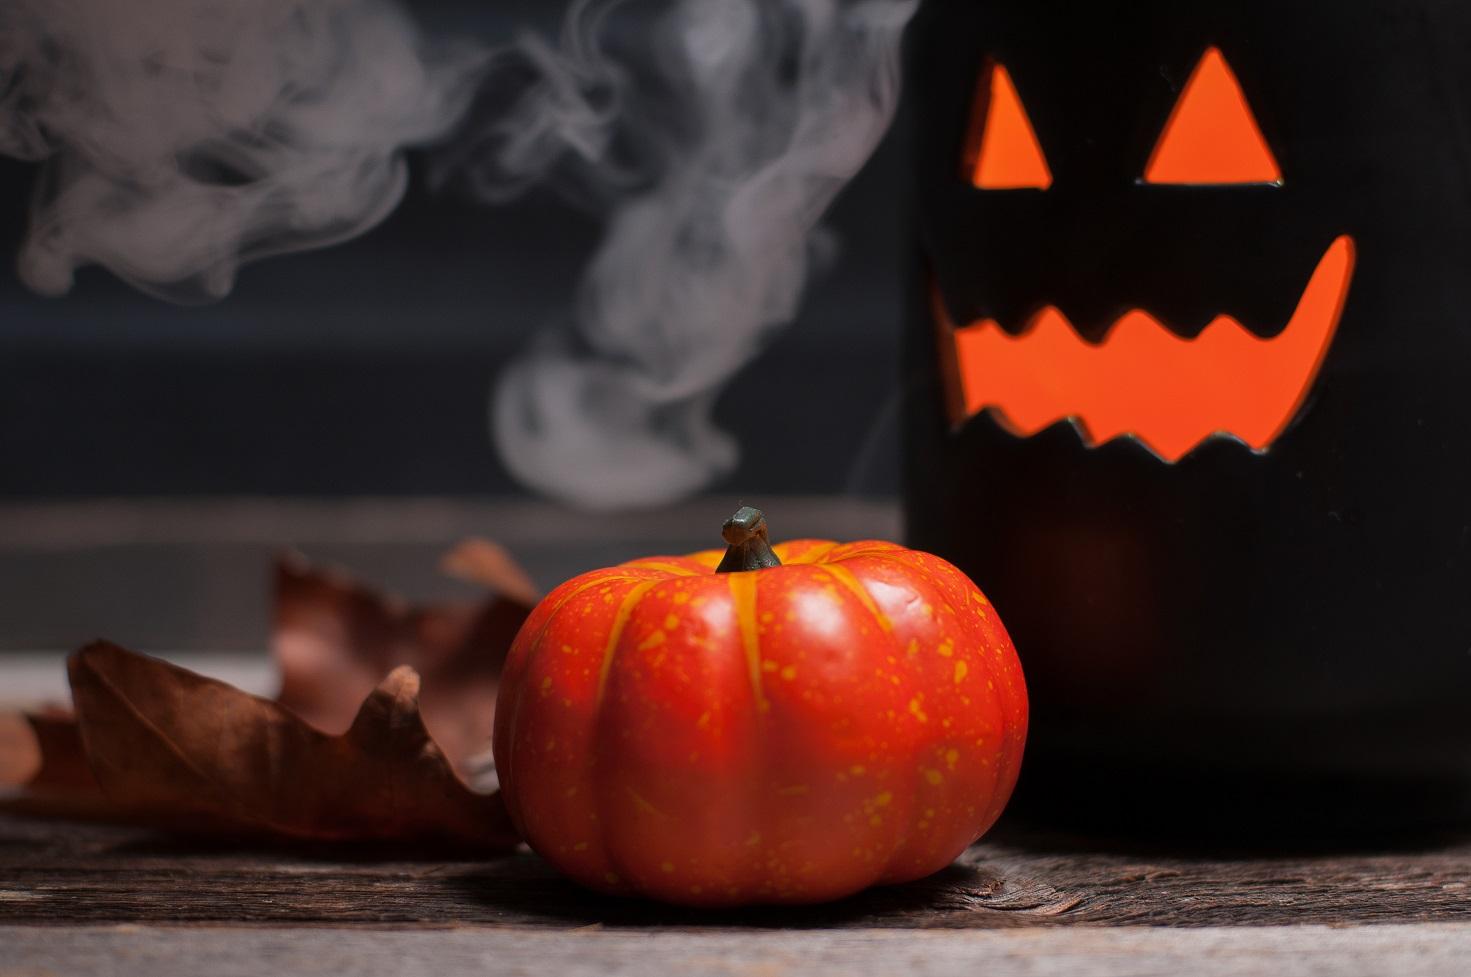 try dry ice for halloween decorations